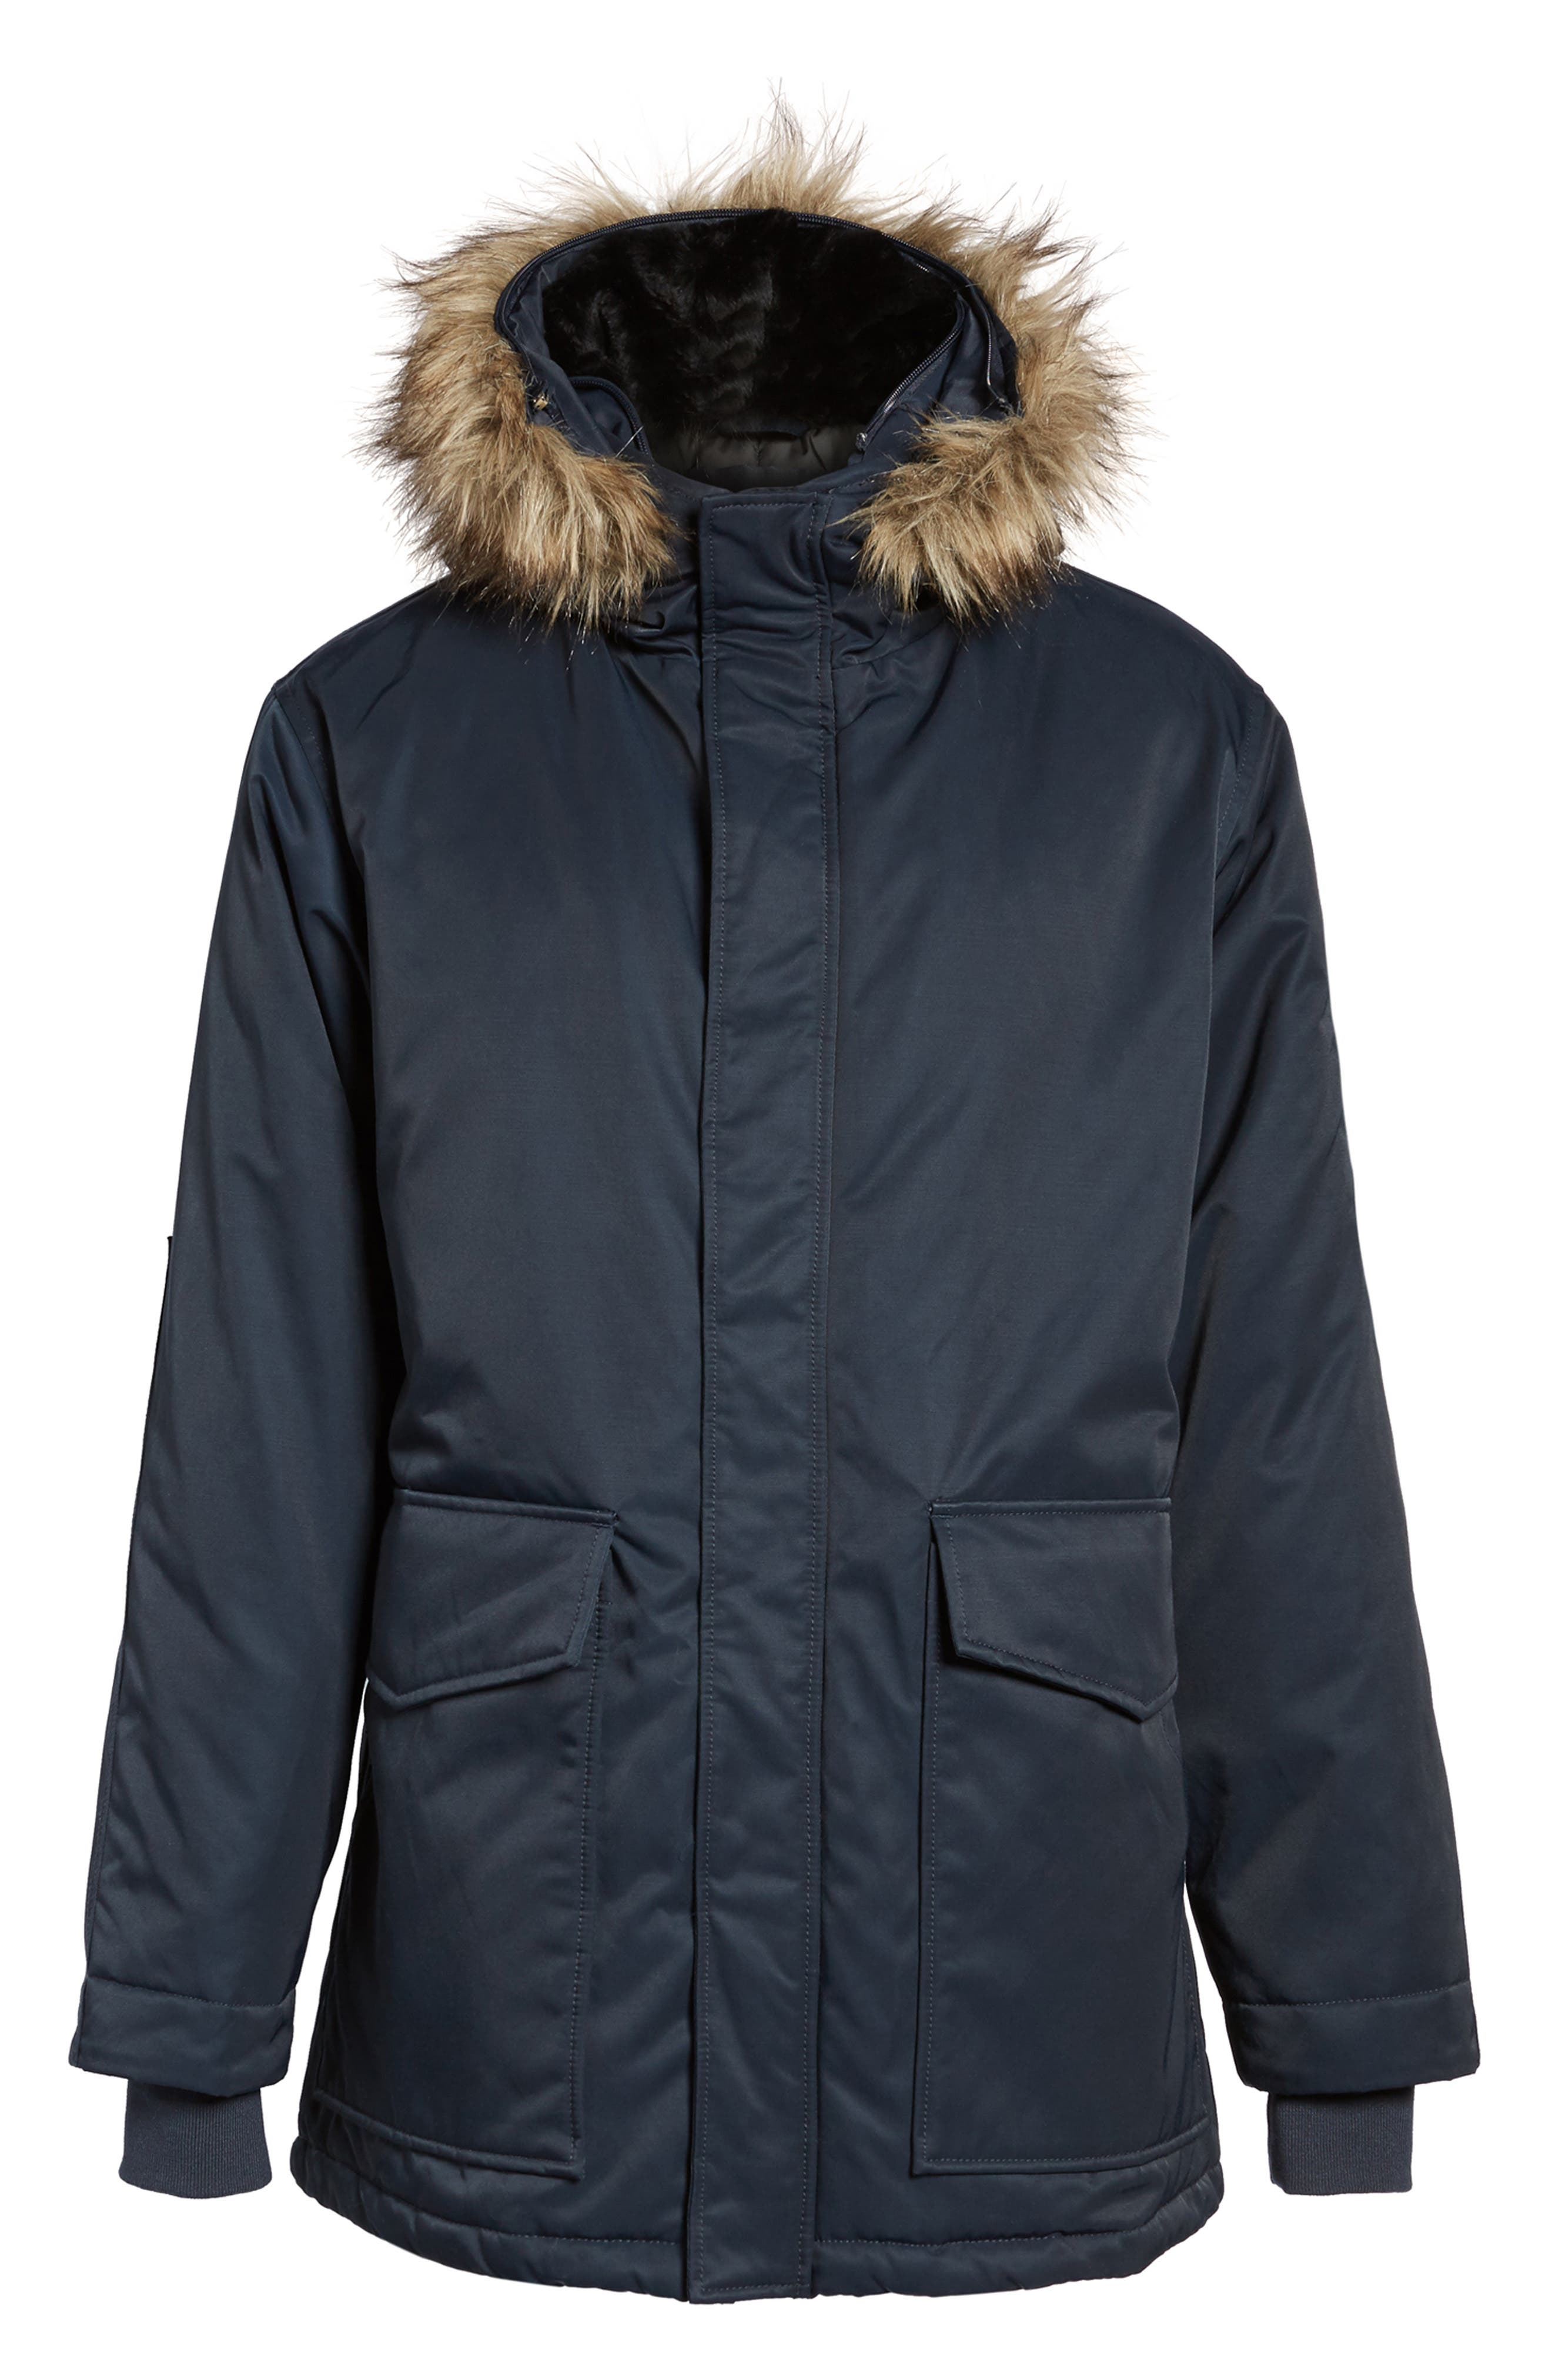 Bystander Hooded Parka with Faux Fur Trim,                             Alternate thumbnail 6, color,                             Marine Blue